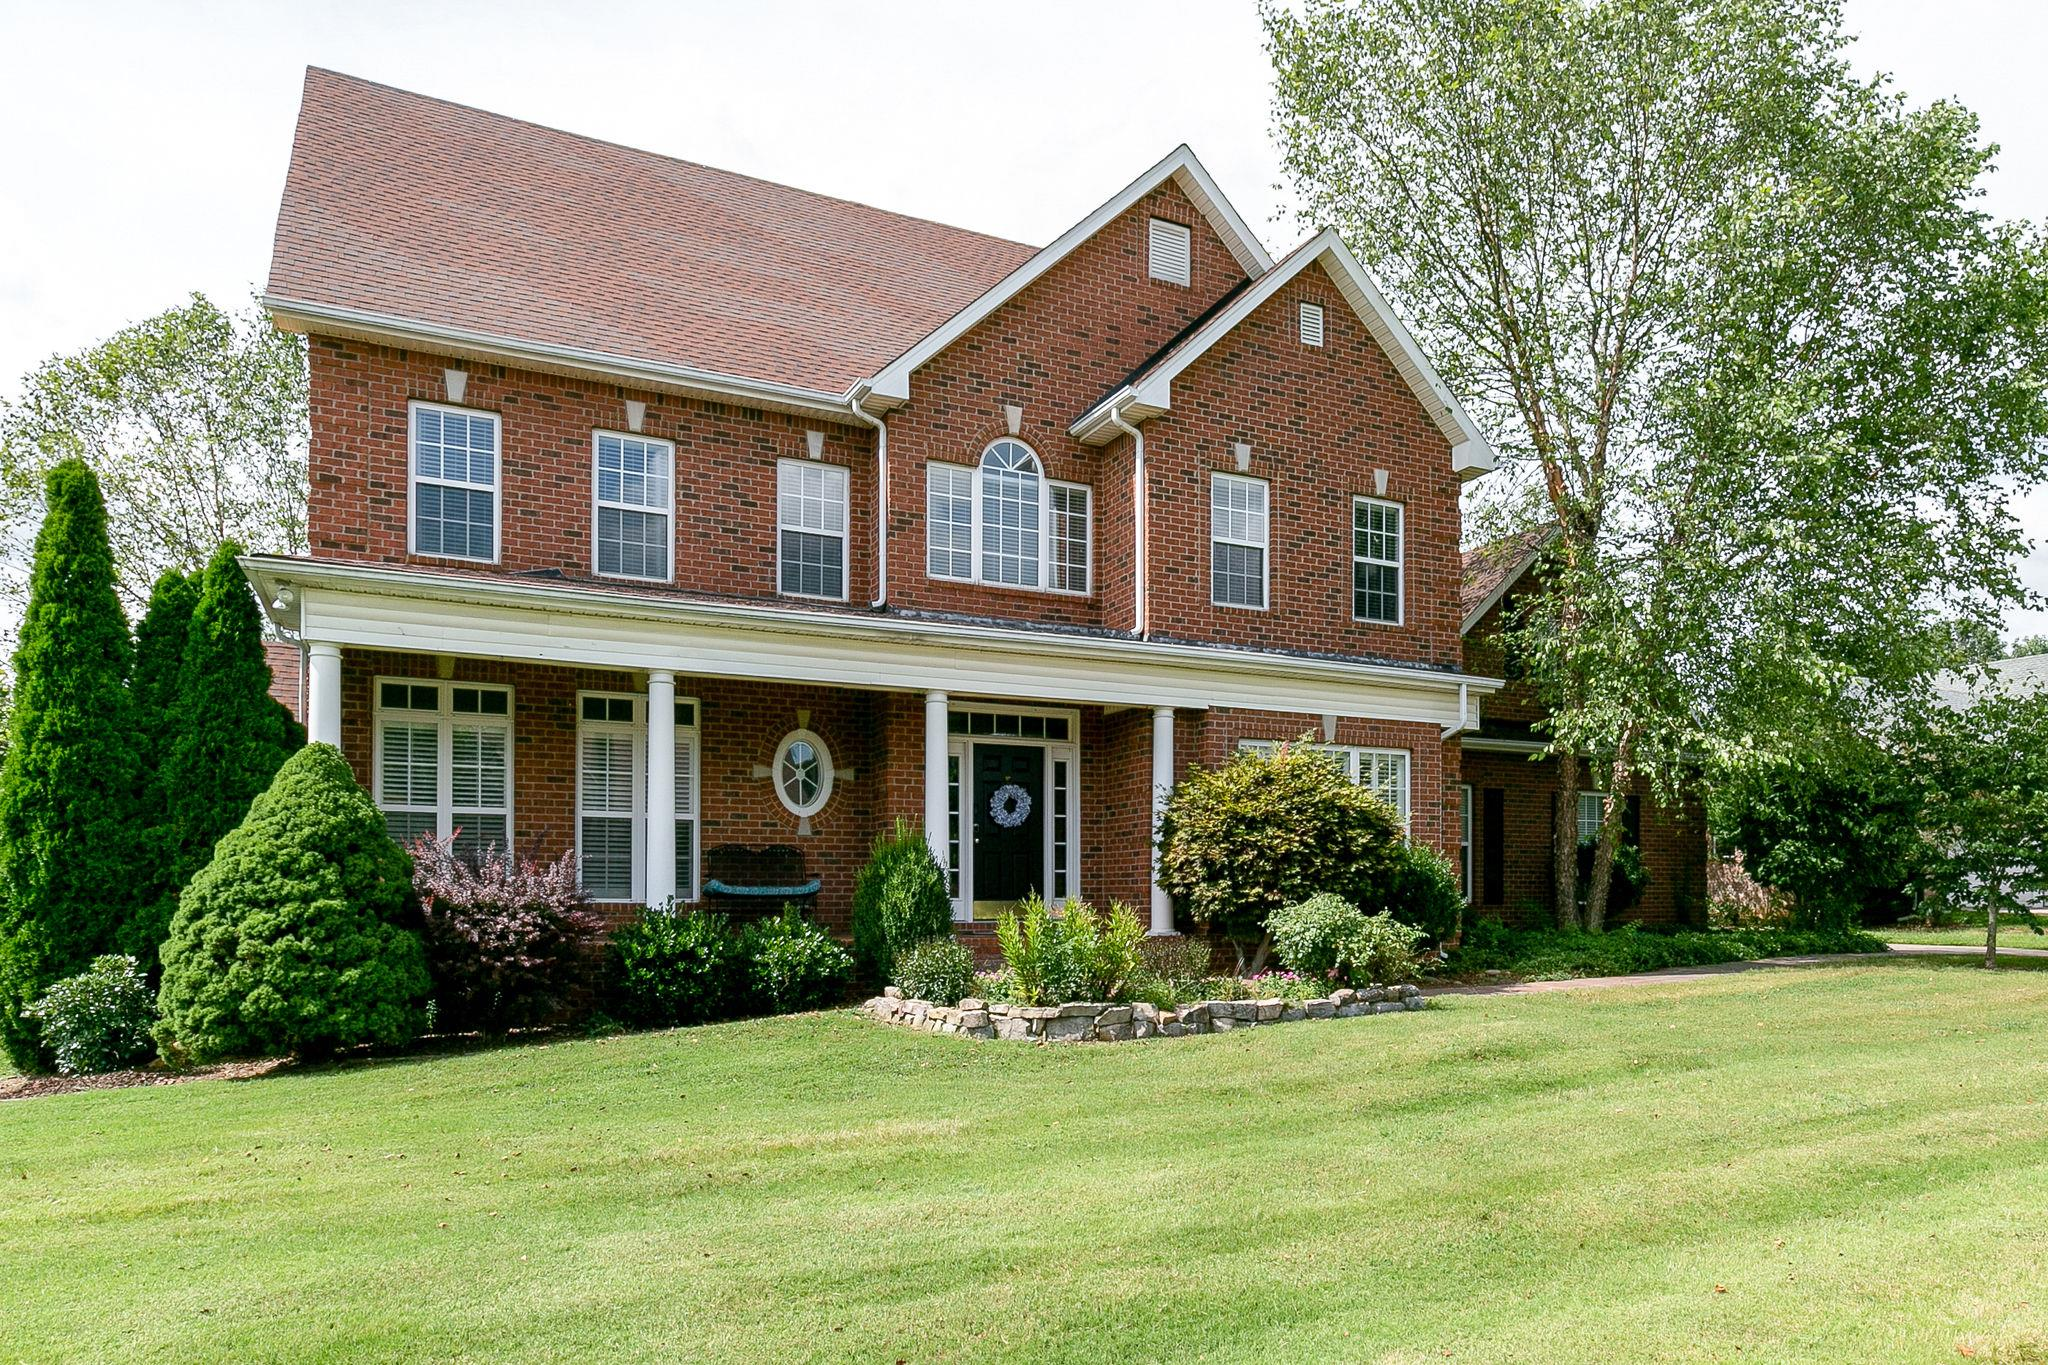 4126 Chancellor Dr, Thompsons Station, TN 37179 - Thompsons Station, TN real estate listing